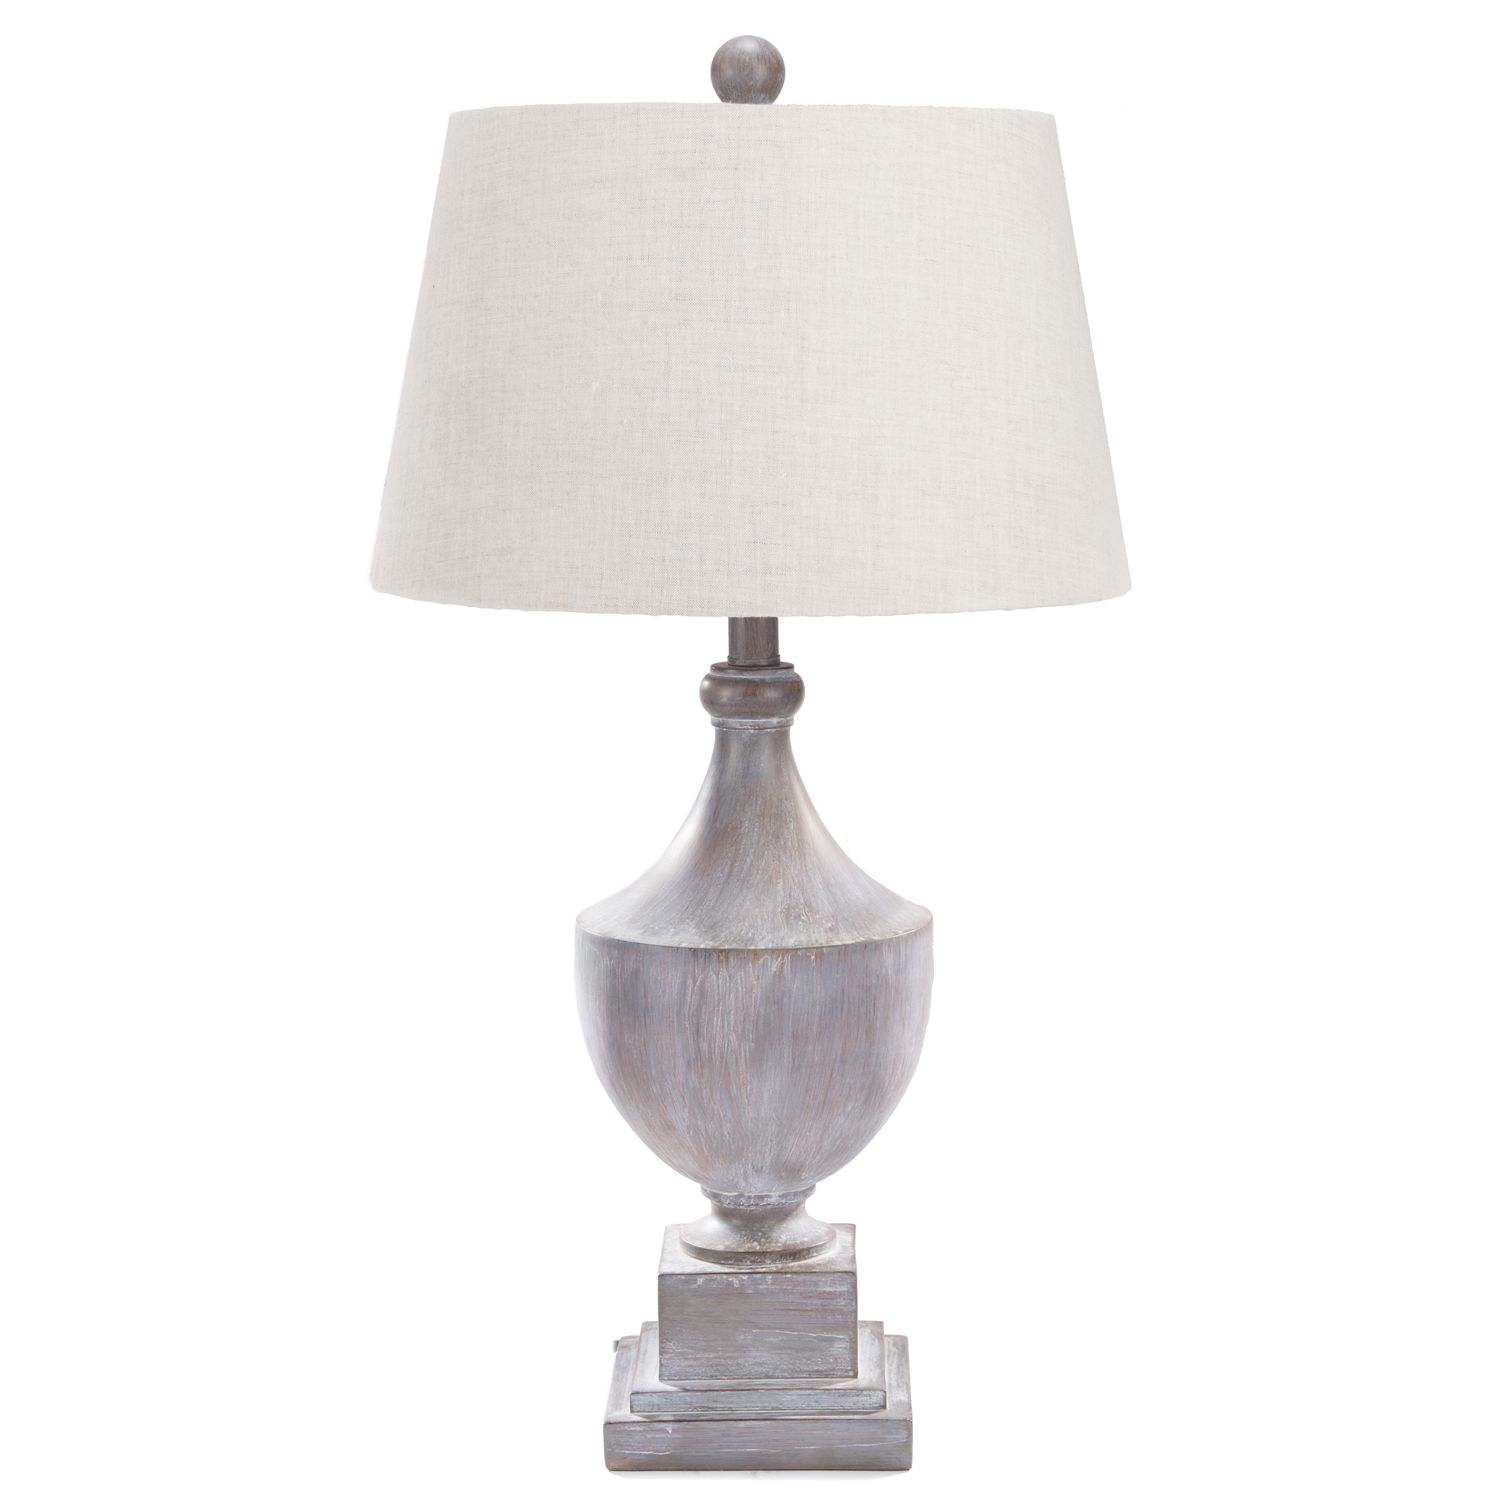 Traditional Elegance Defines The Eleanor Classic Table Lamp S Stately Living Room And Bedroom Style Atop A Carv Rustic Table Lamps Table Lamp Grey Table Lamps